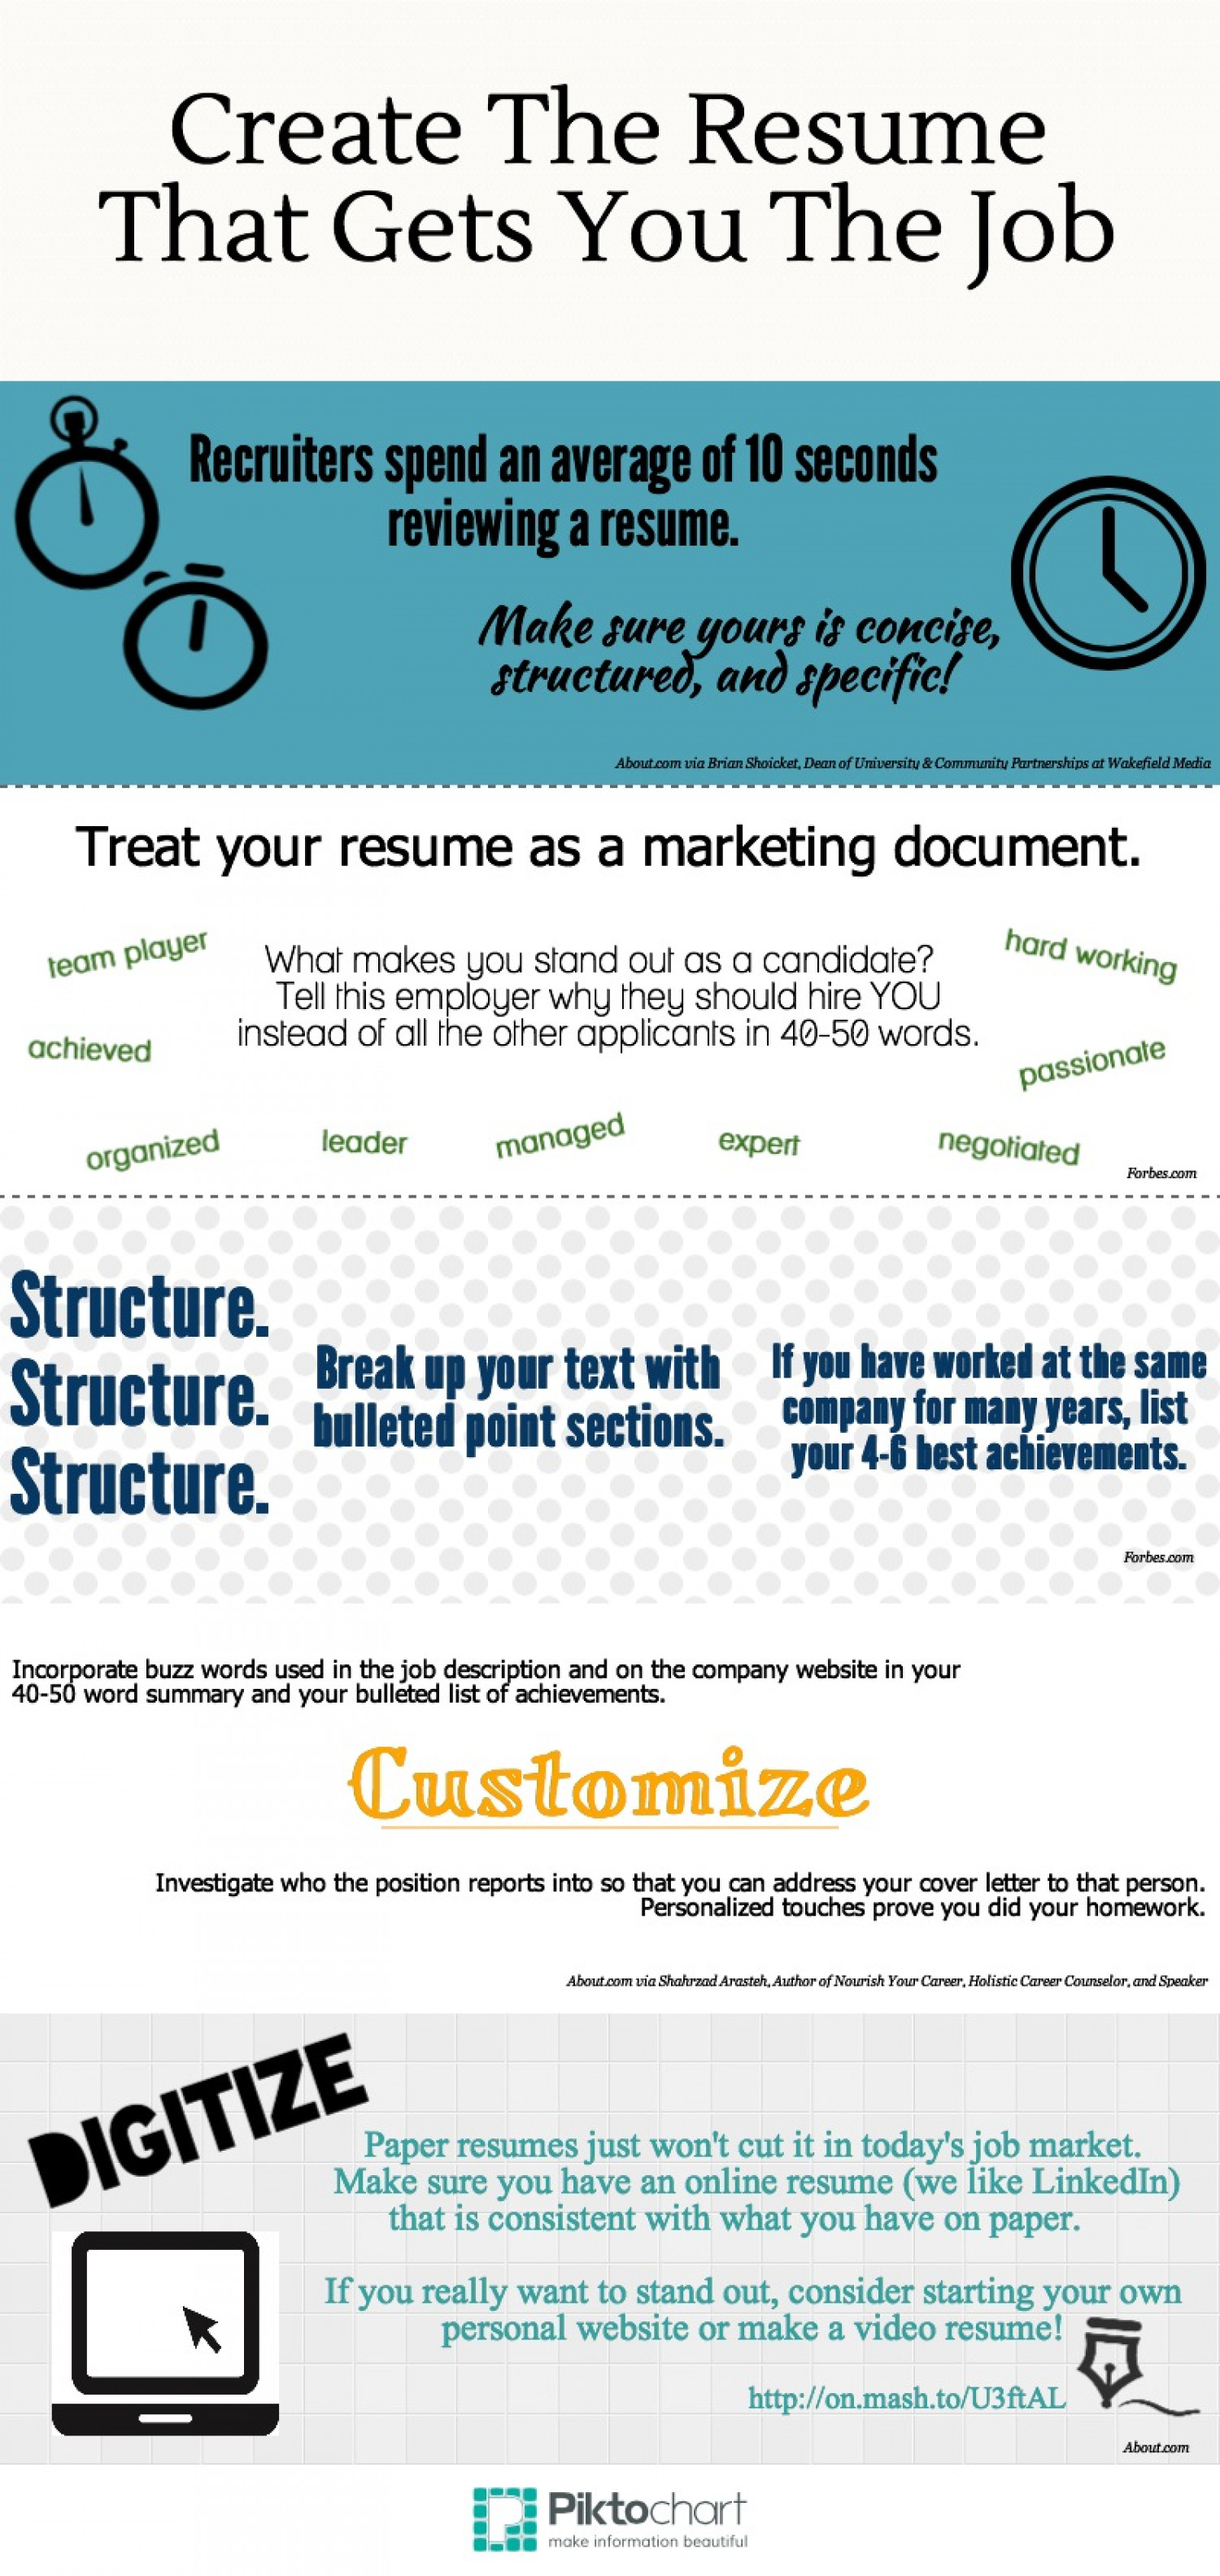 How To Make Your Resume Stand Out Infographic  Examples Of How To Make A Resume